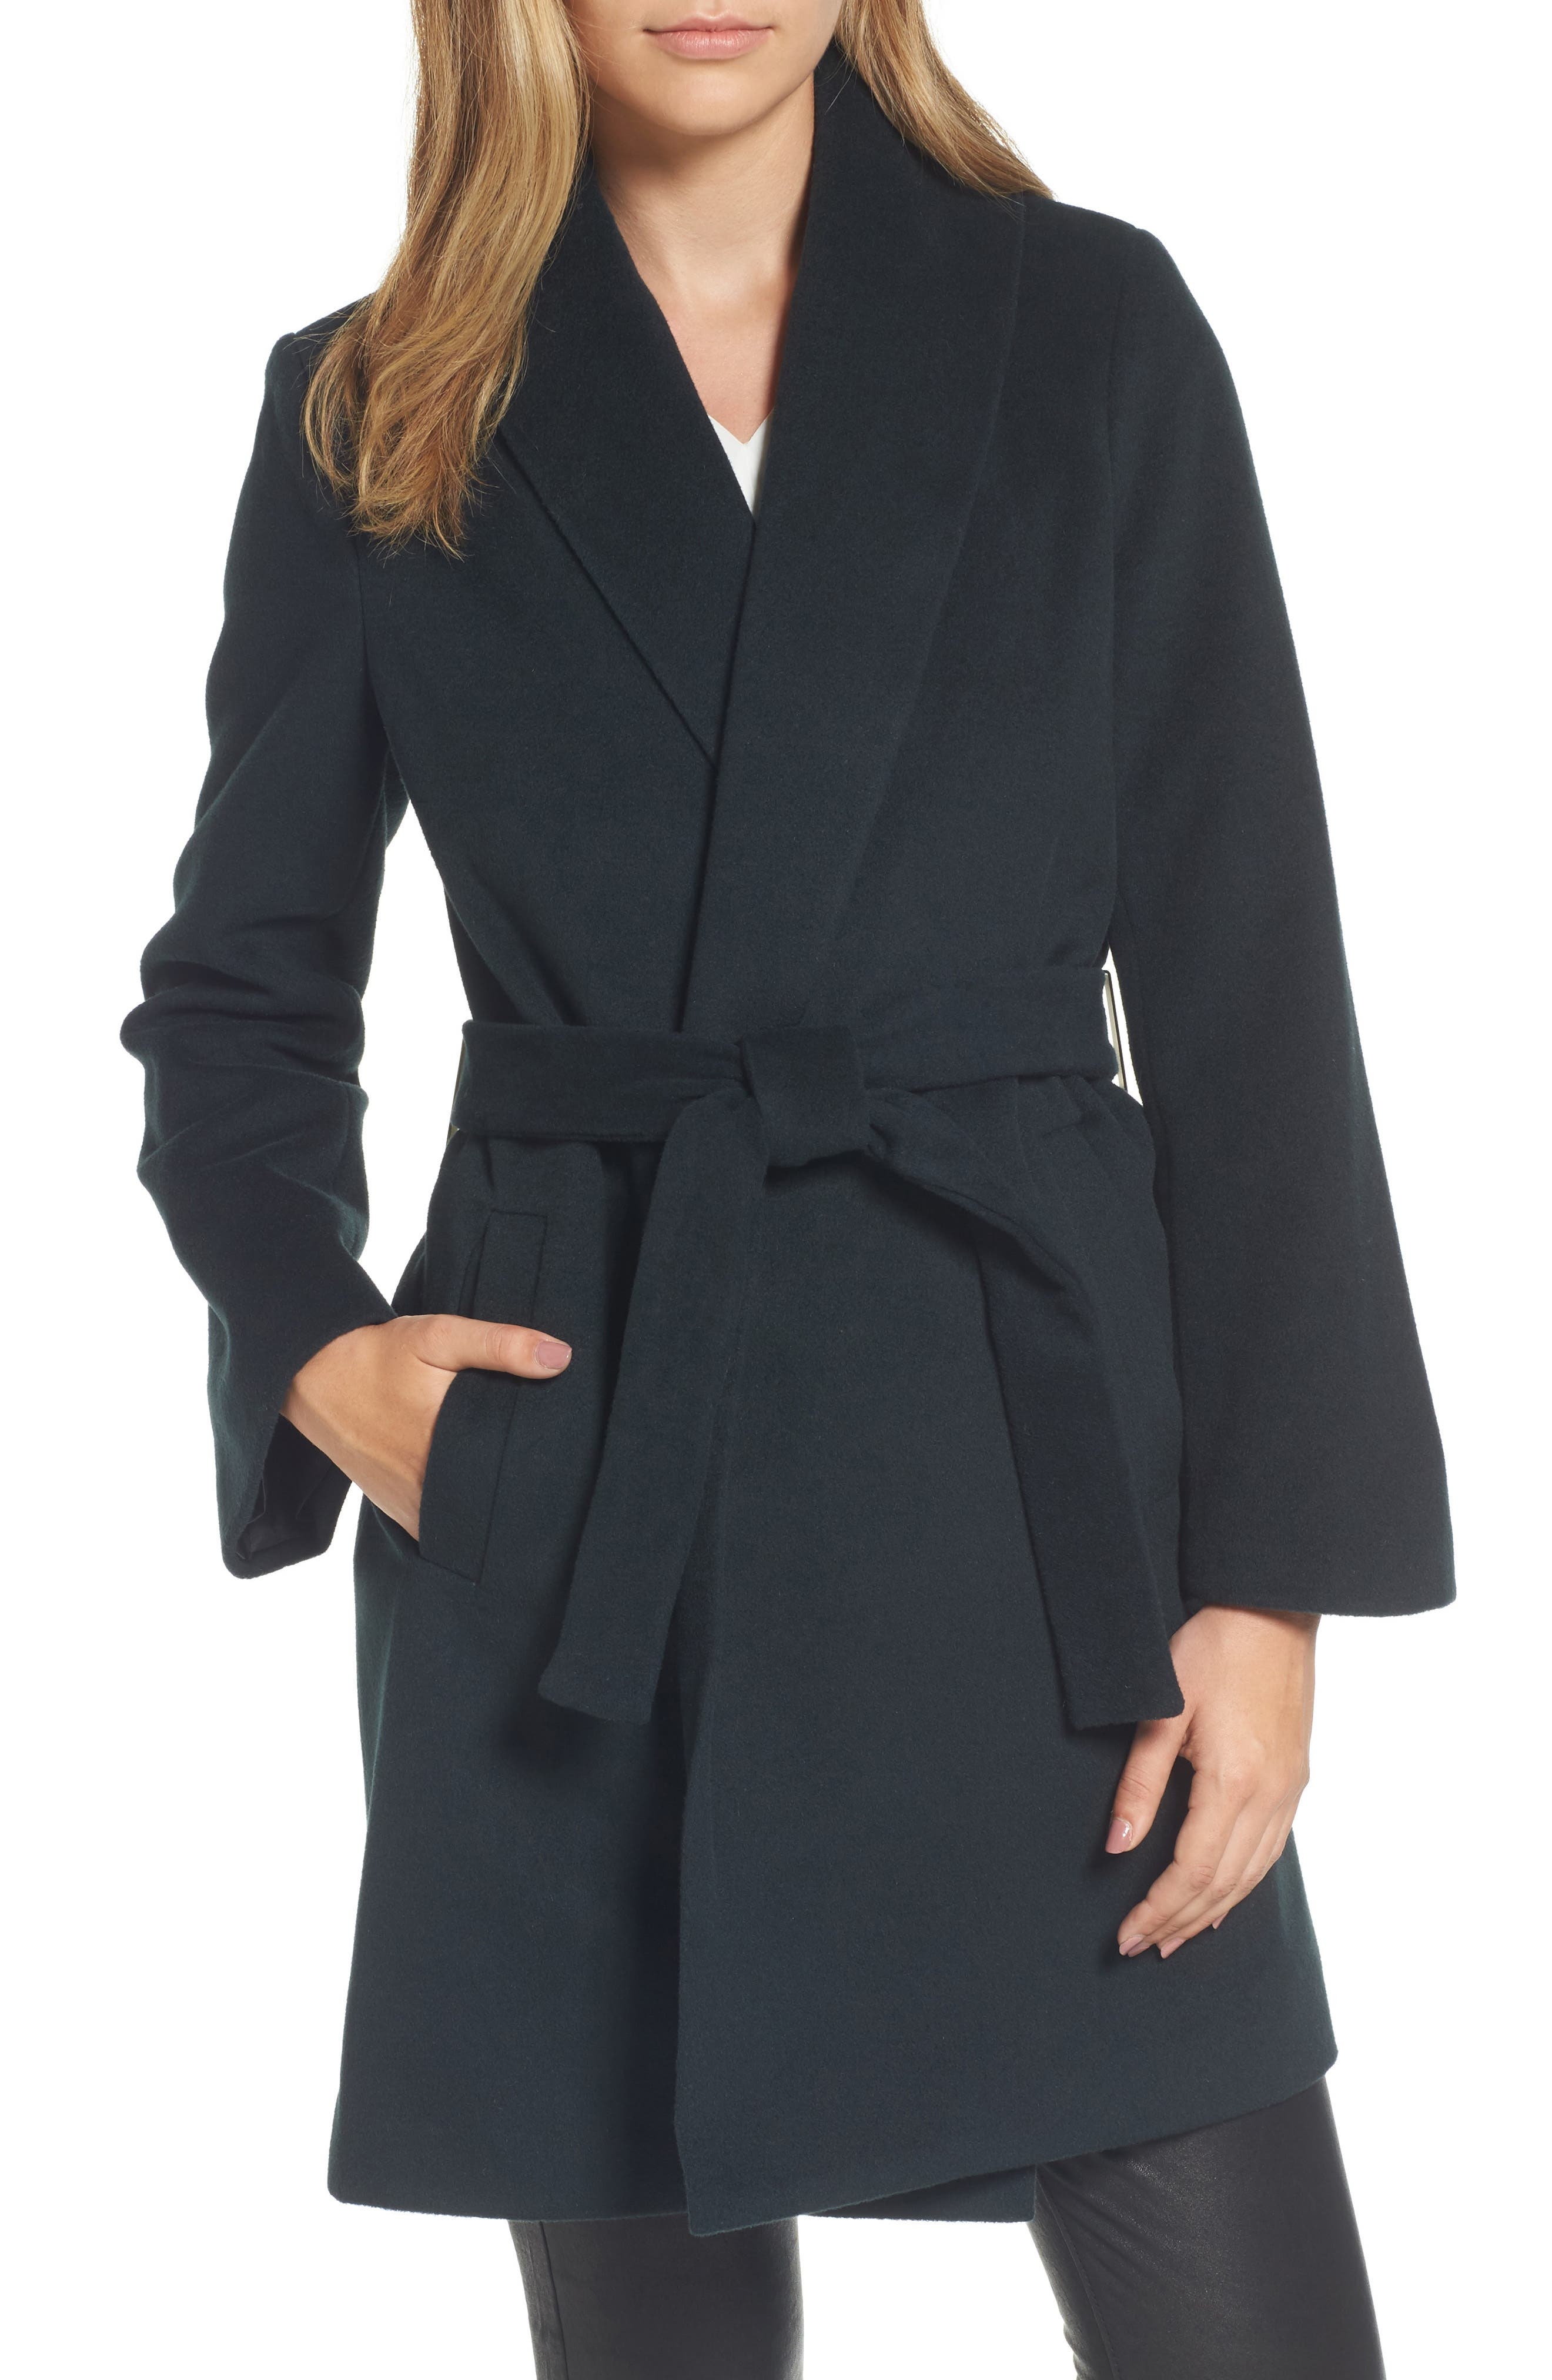 Main Image - Tahari Gabrielle Wool Blend Long Wrap Coat